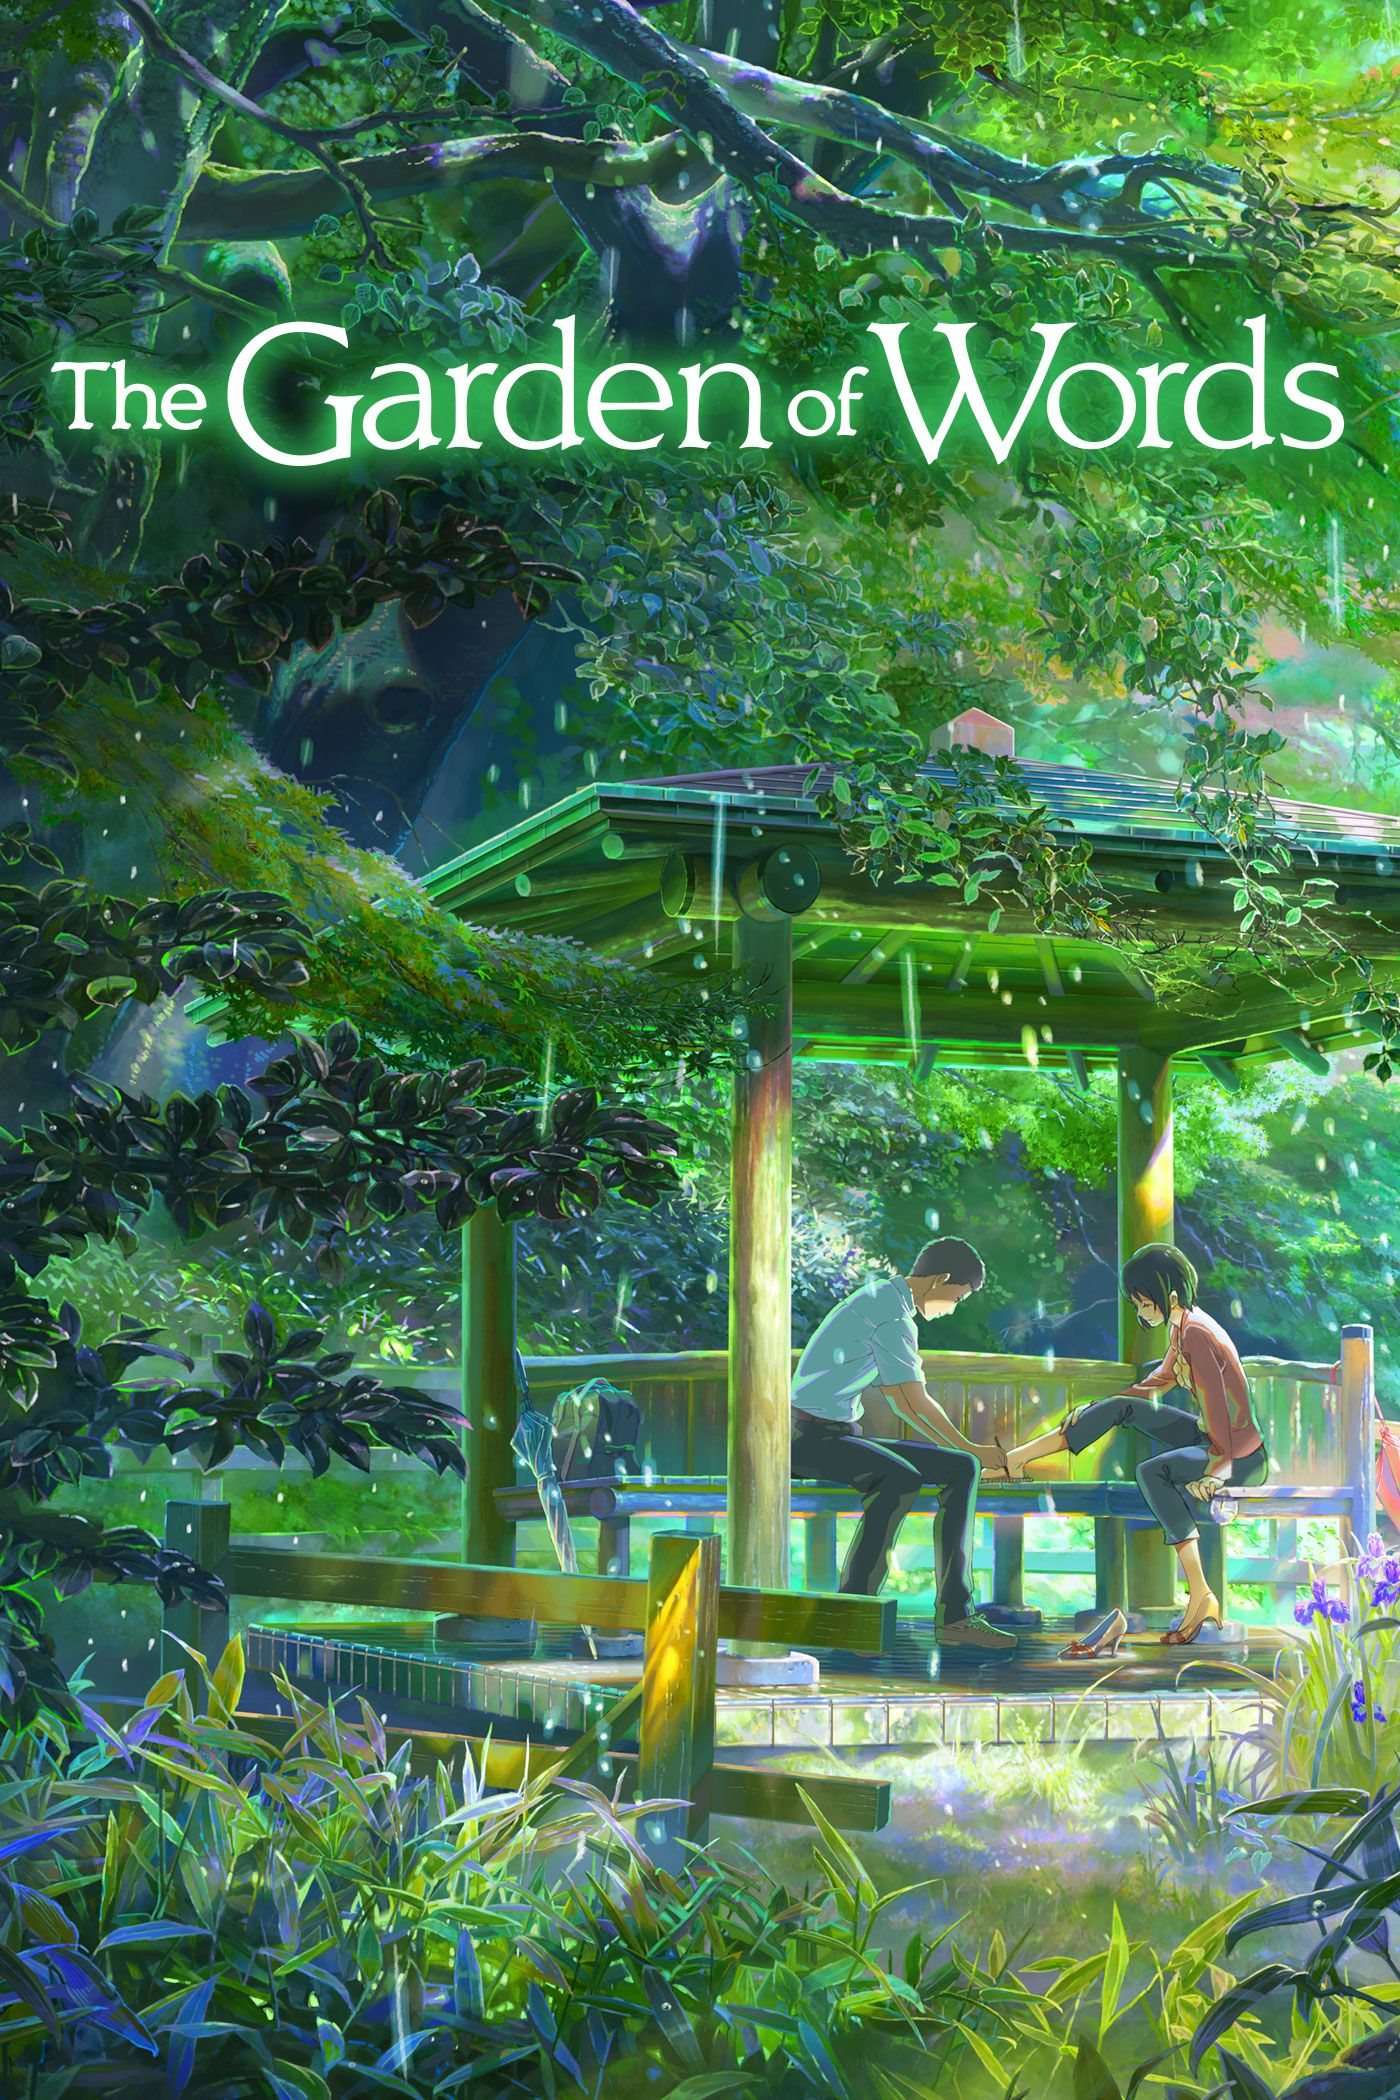 Garden of Words animation anime romance Watch It